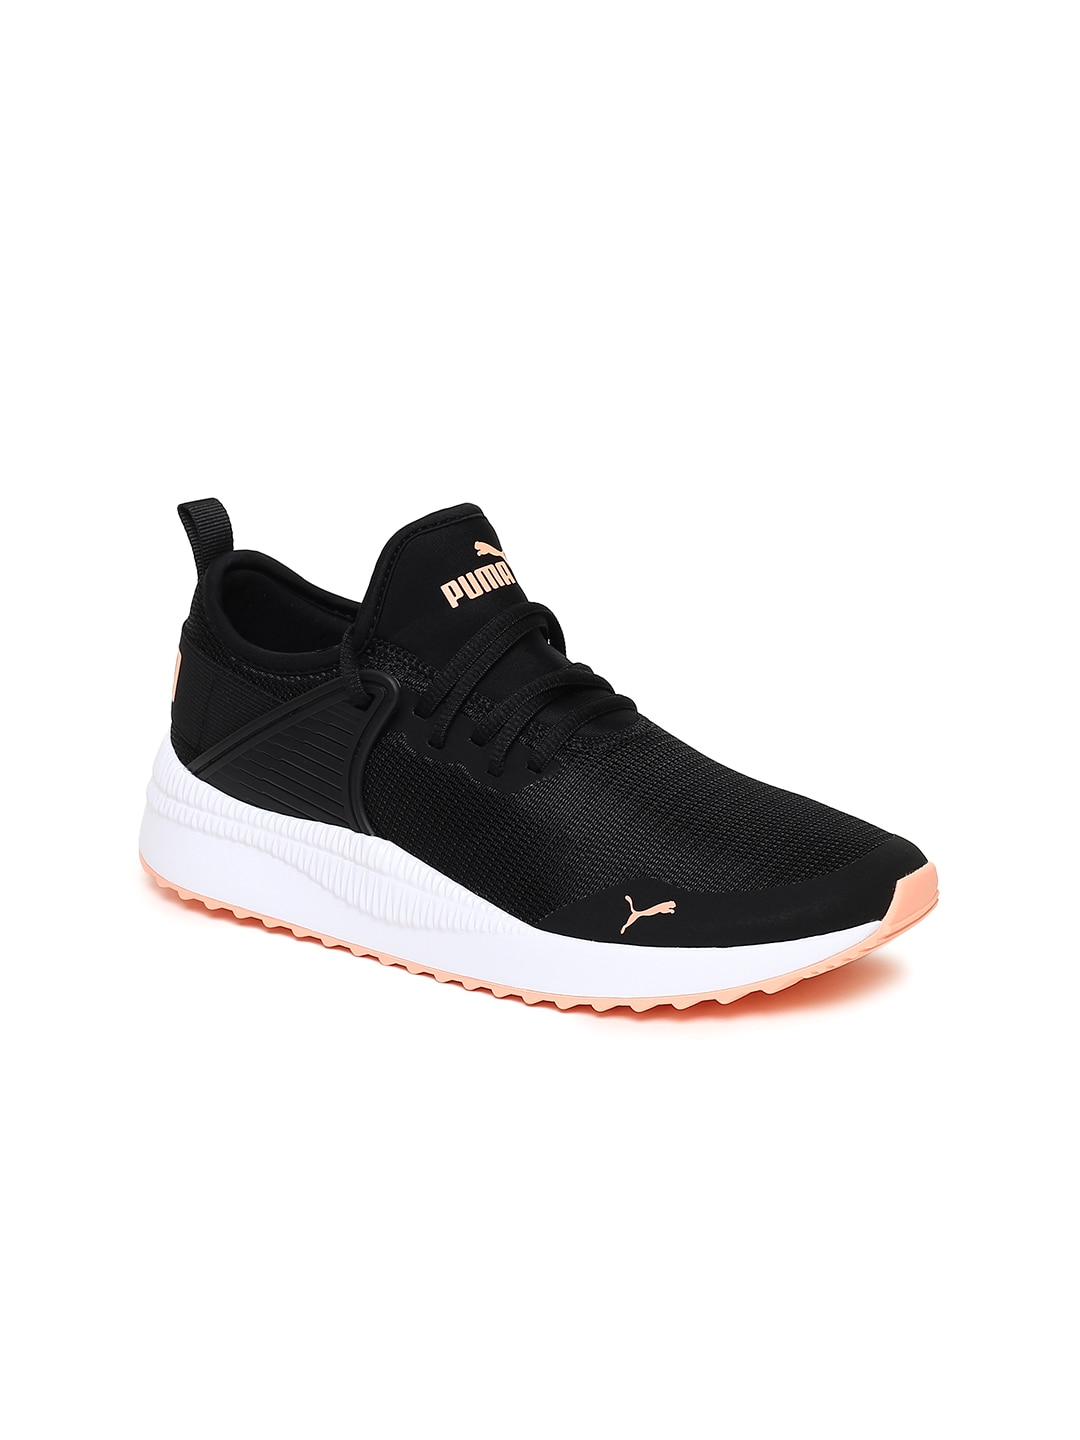 Puma Shoes - Buy Puma Shoes for Men   Women Online in India 097d0ef9132